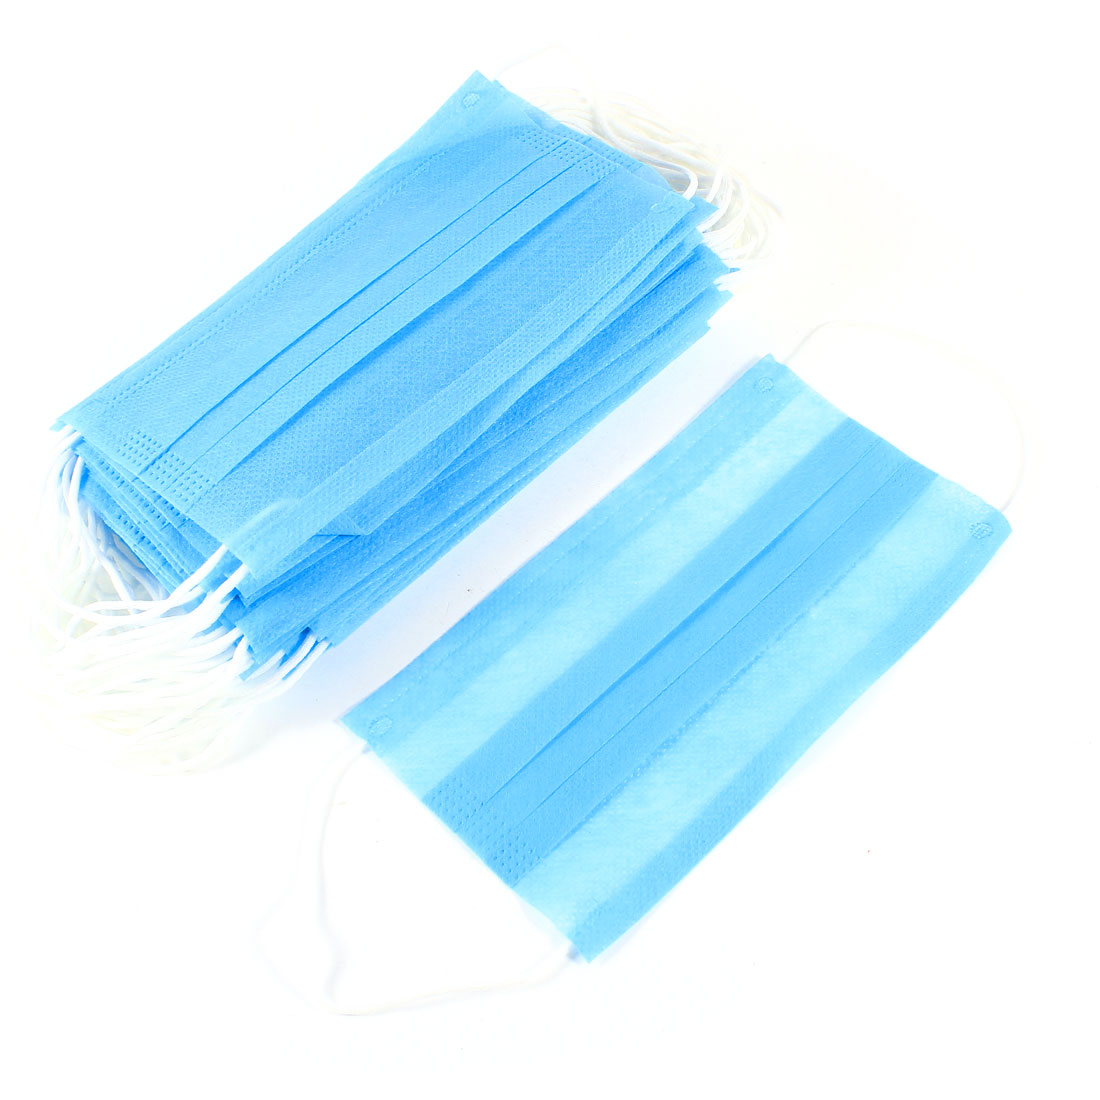 Stretchy Ear Loop Anti Dust Disposable Face Mask 17.5cm Length 150 Pcs